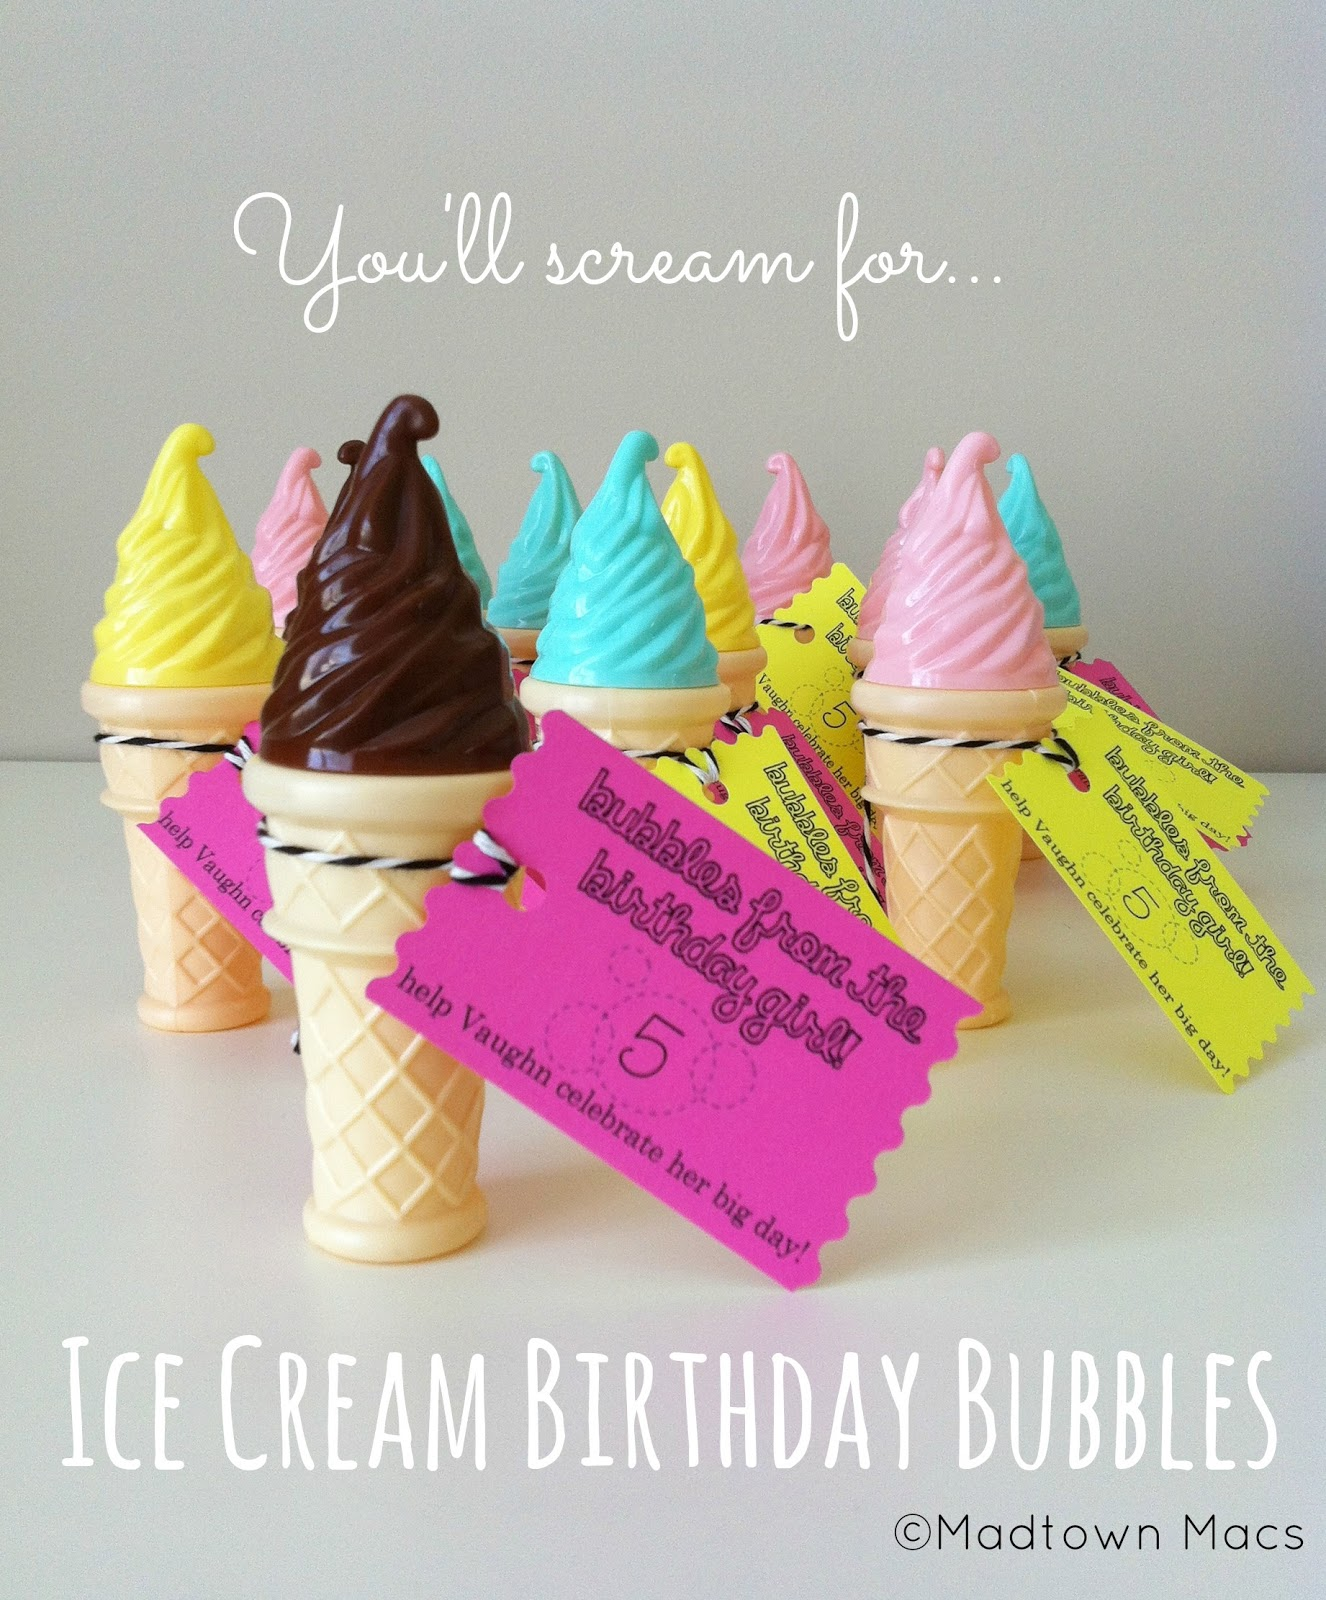 Ice Cream Birthday Bubbles: Non-Edible Classroom Treats